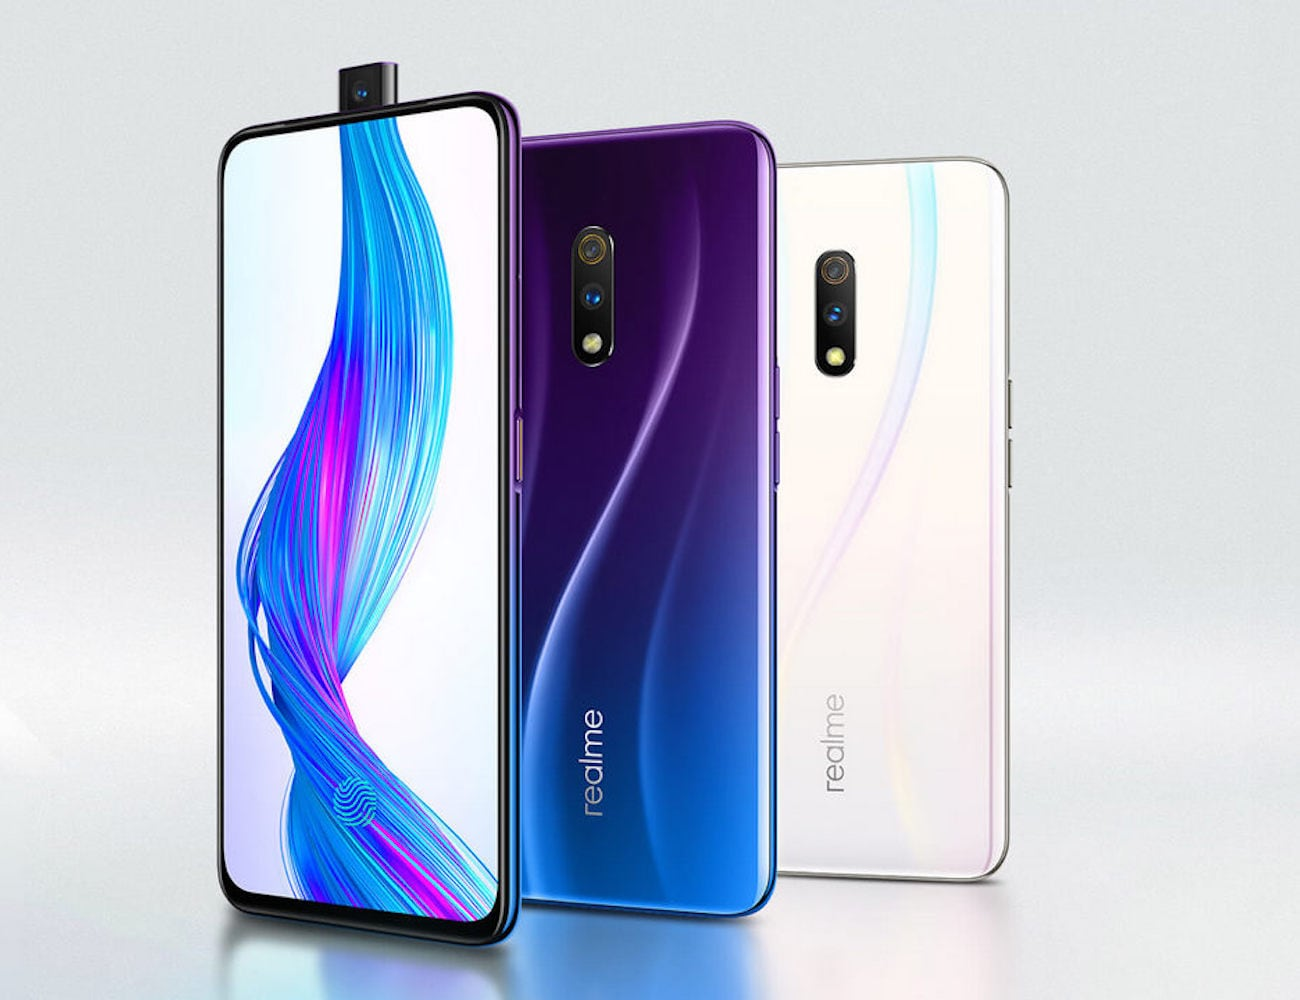 Realme X Pop-Up Camera Smartphone gives you the perfect selfie